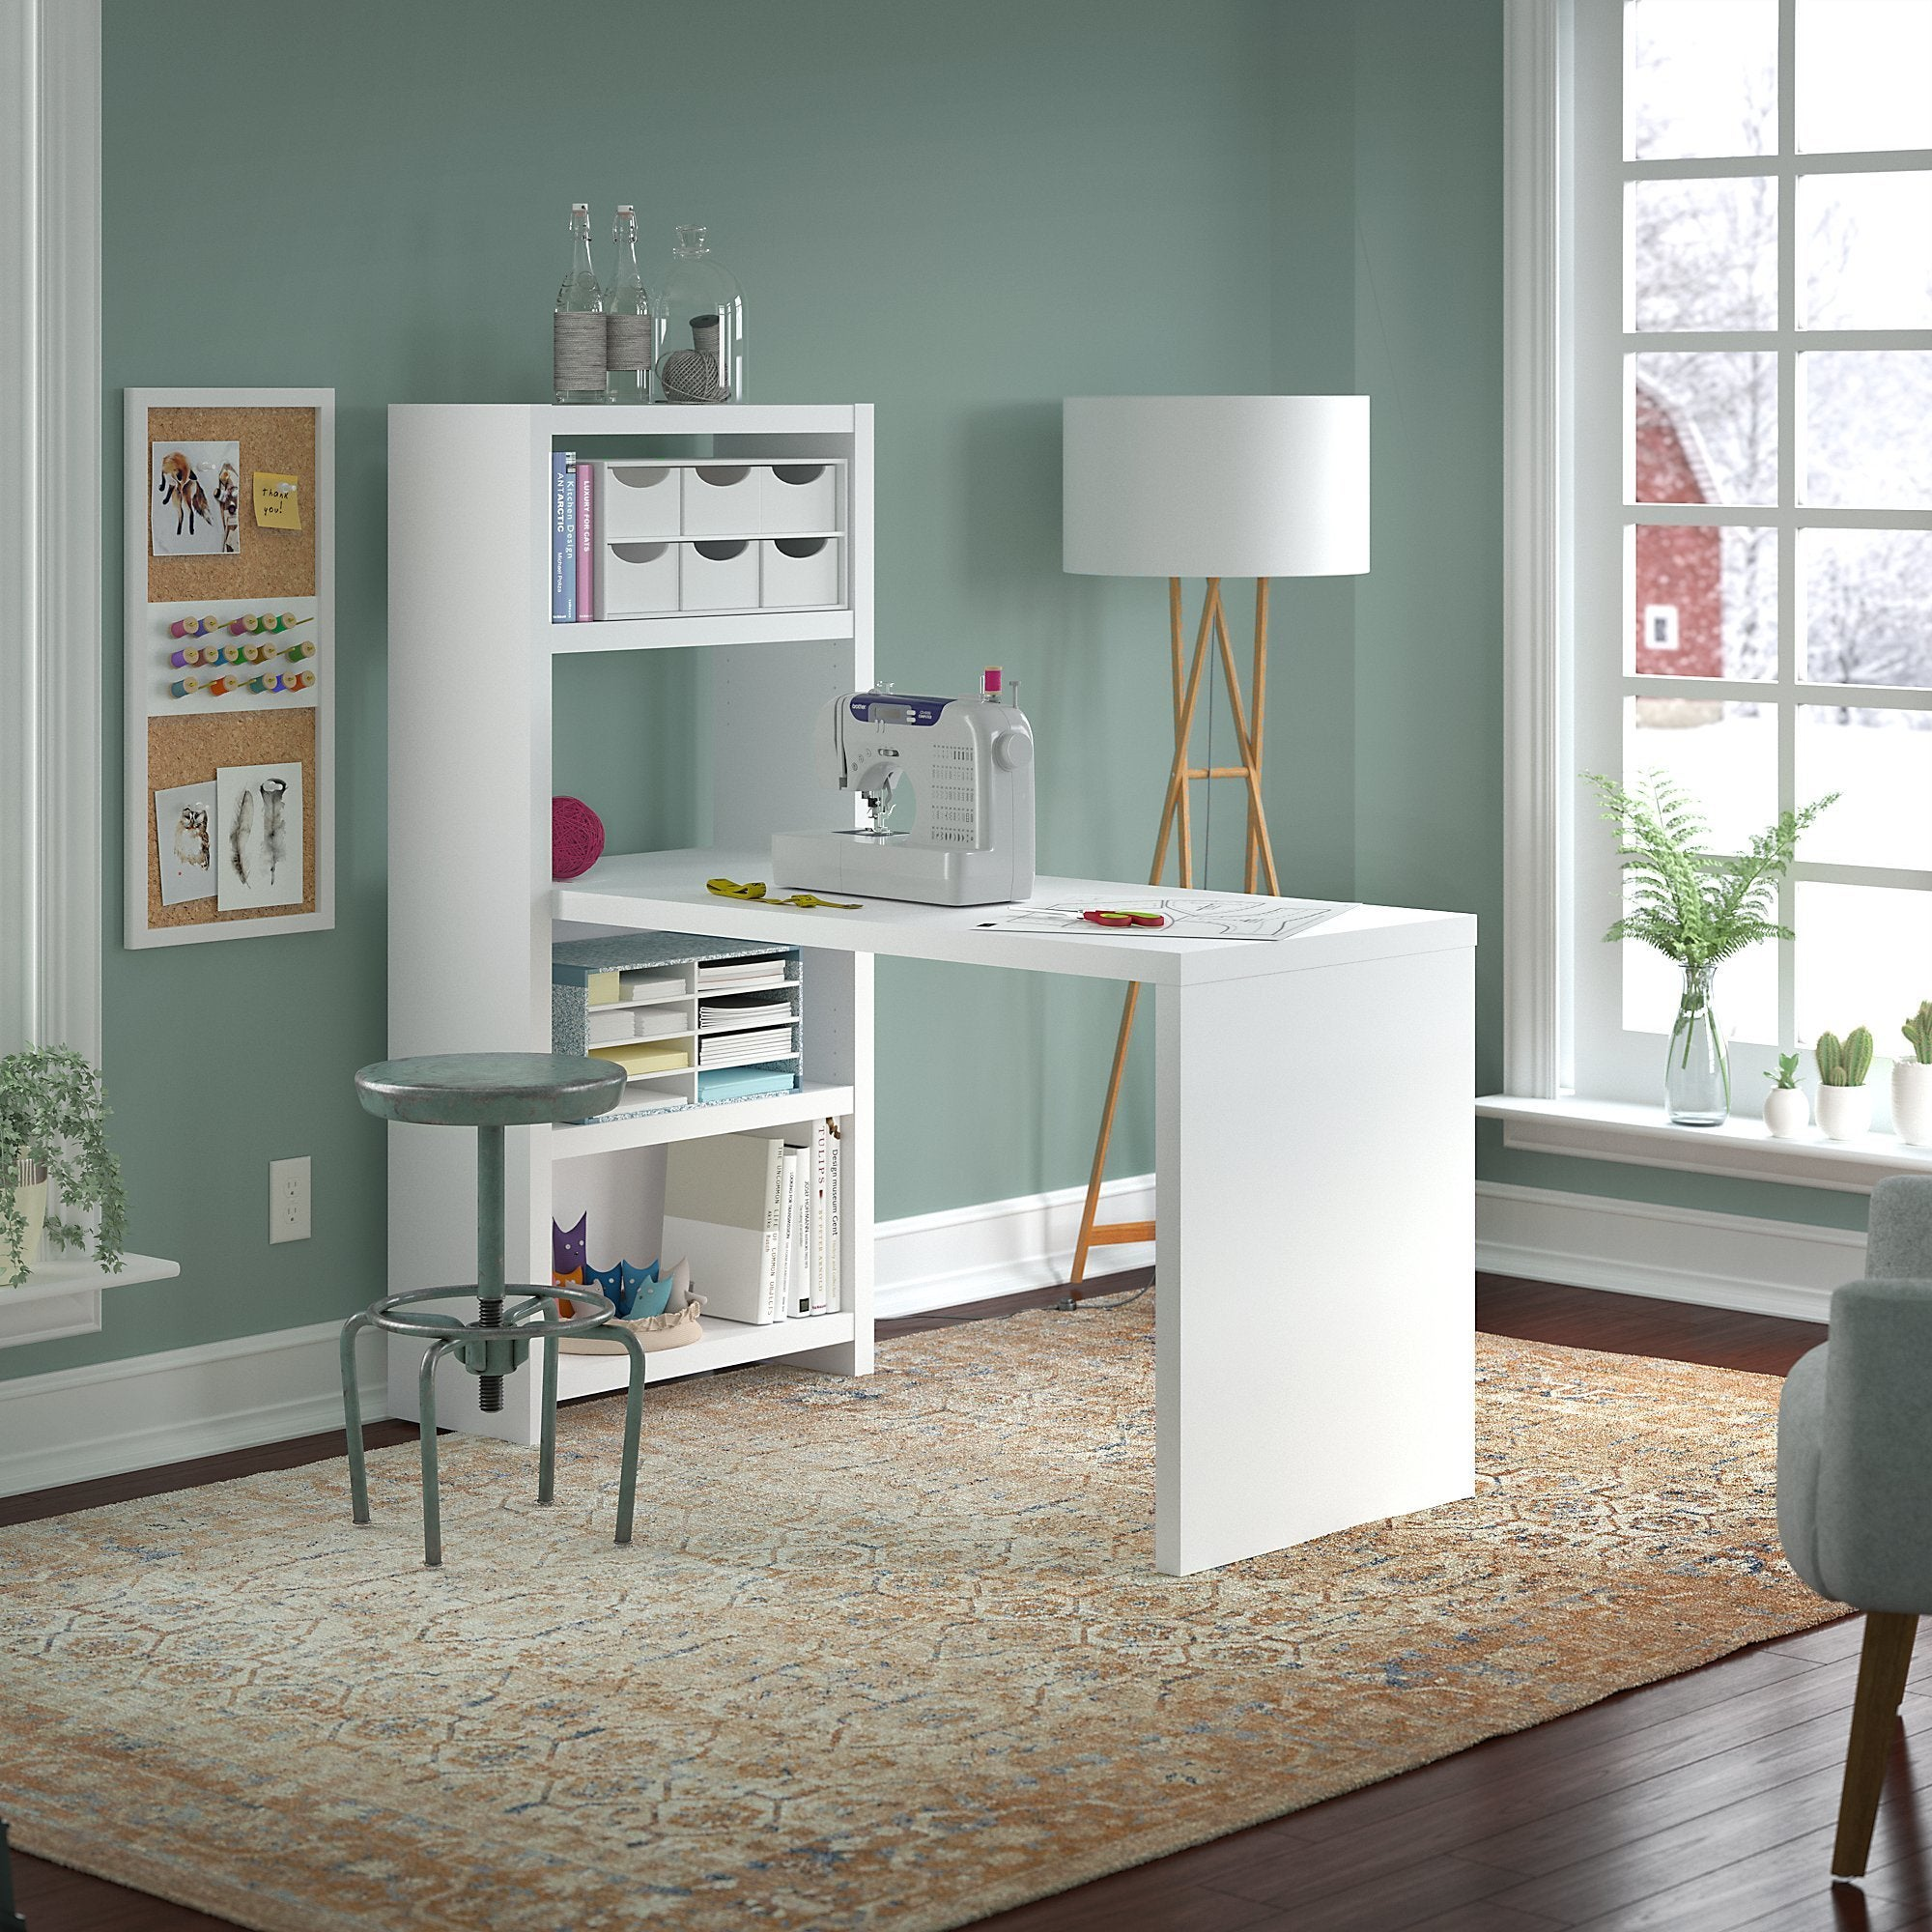 Shop office by kathy ireland echo 56w craft table on sale free shipping today overstock com 16003559